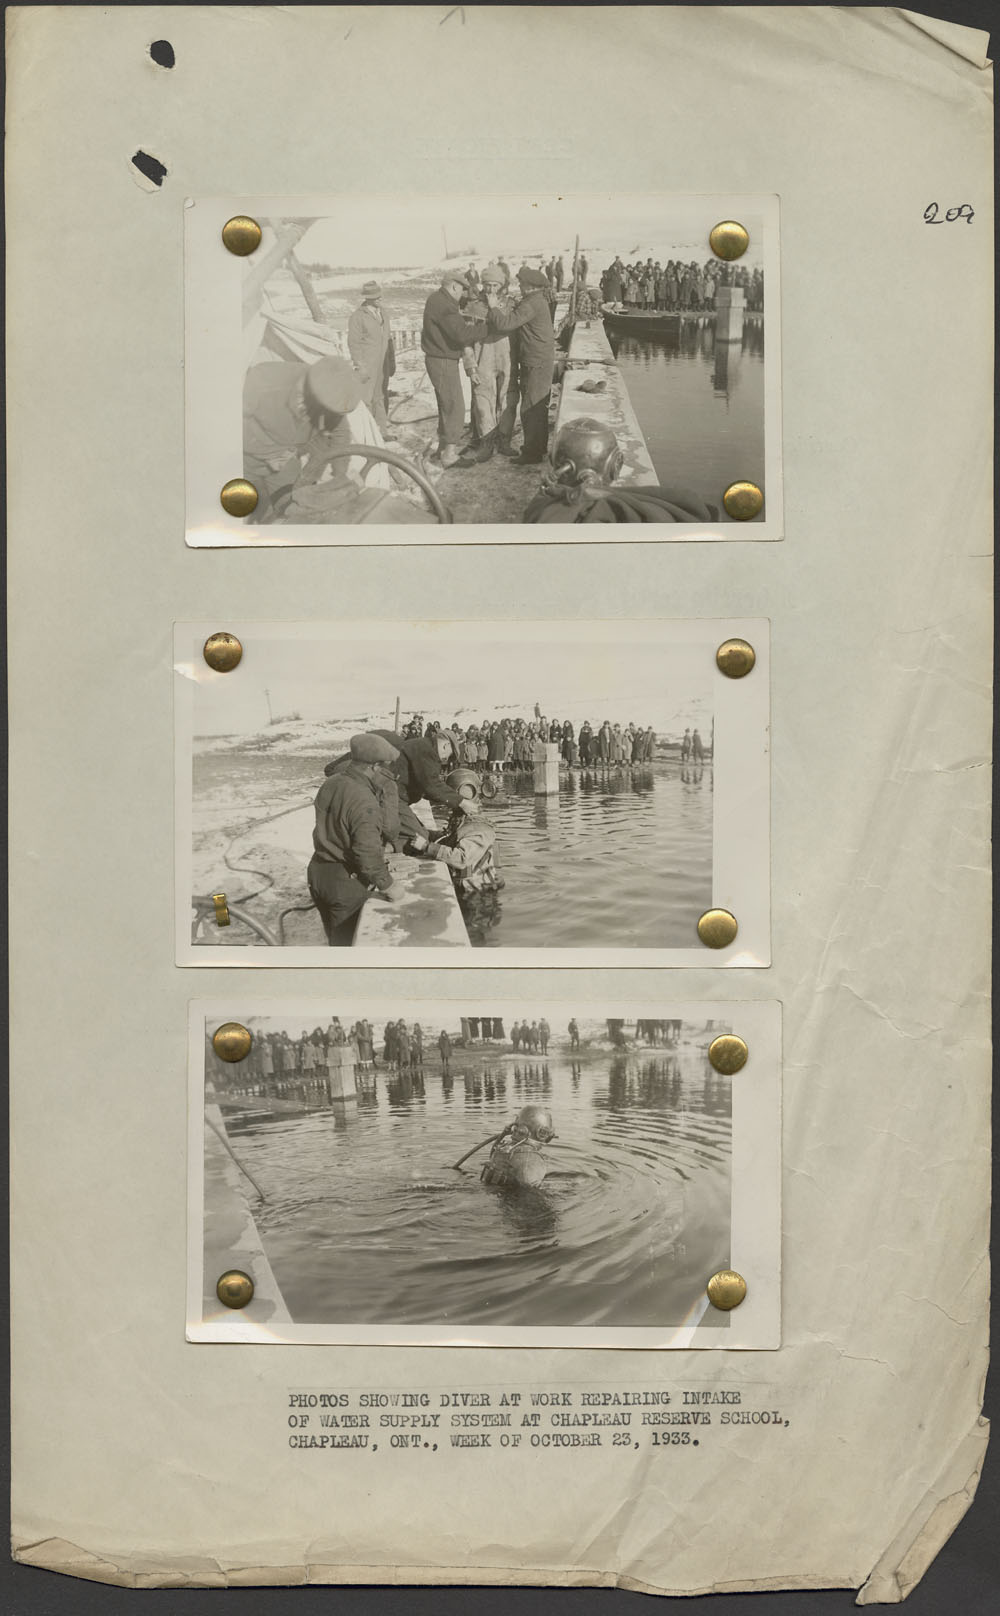 Saint John's Indian Residential School, three photographs of a diver working to repair intake of water supply system, Chapleau, week of October 23, 1933